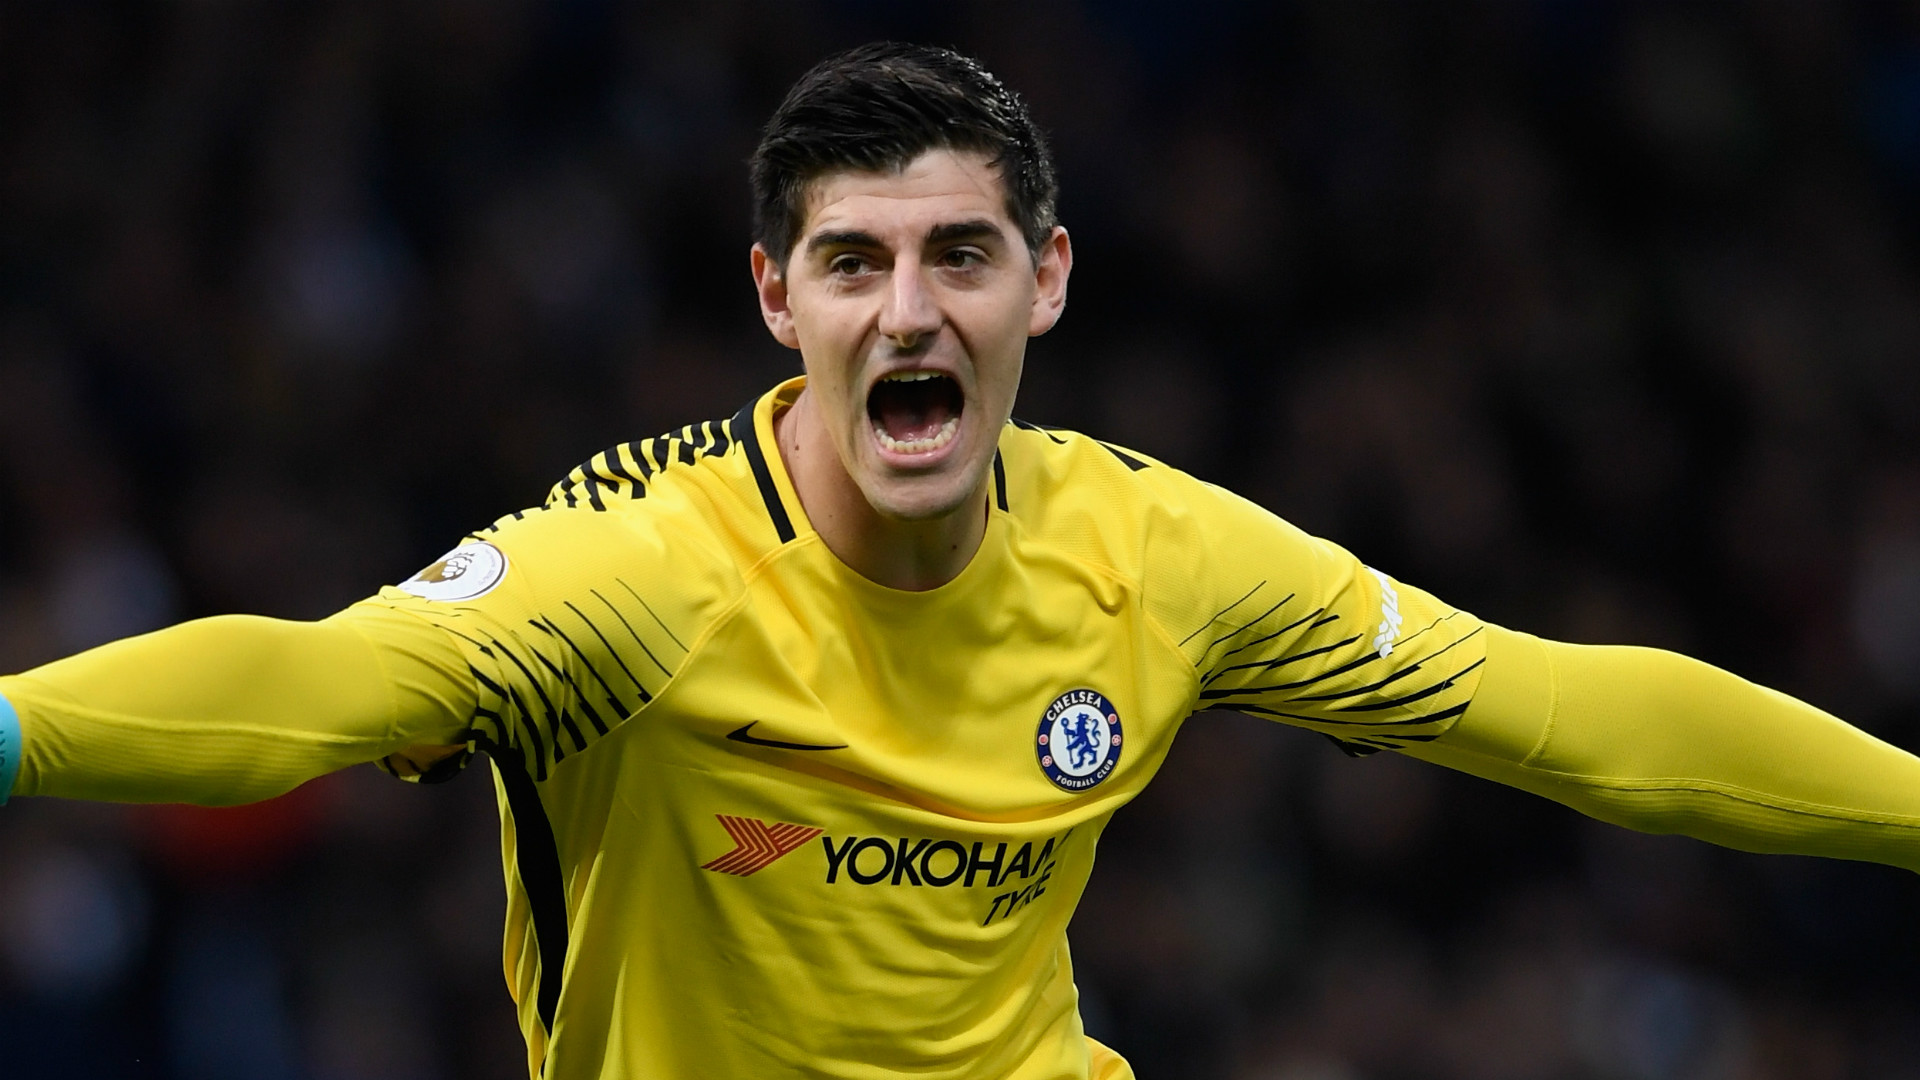 Thibaut Courtois' agent delivers warning to Chelsea over Real Madrid rumours